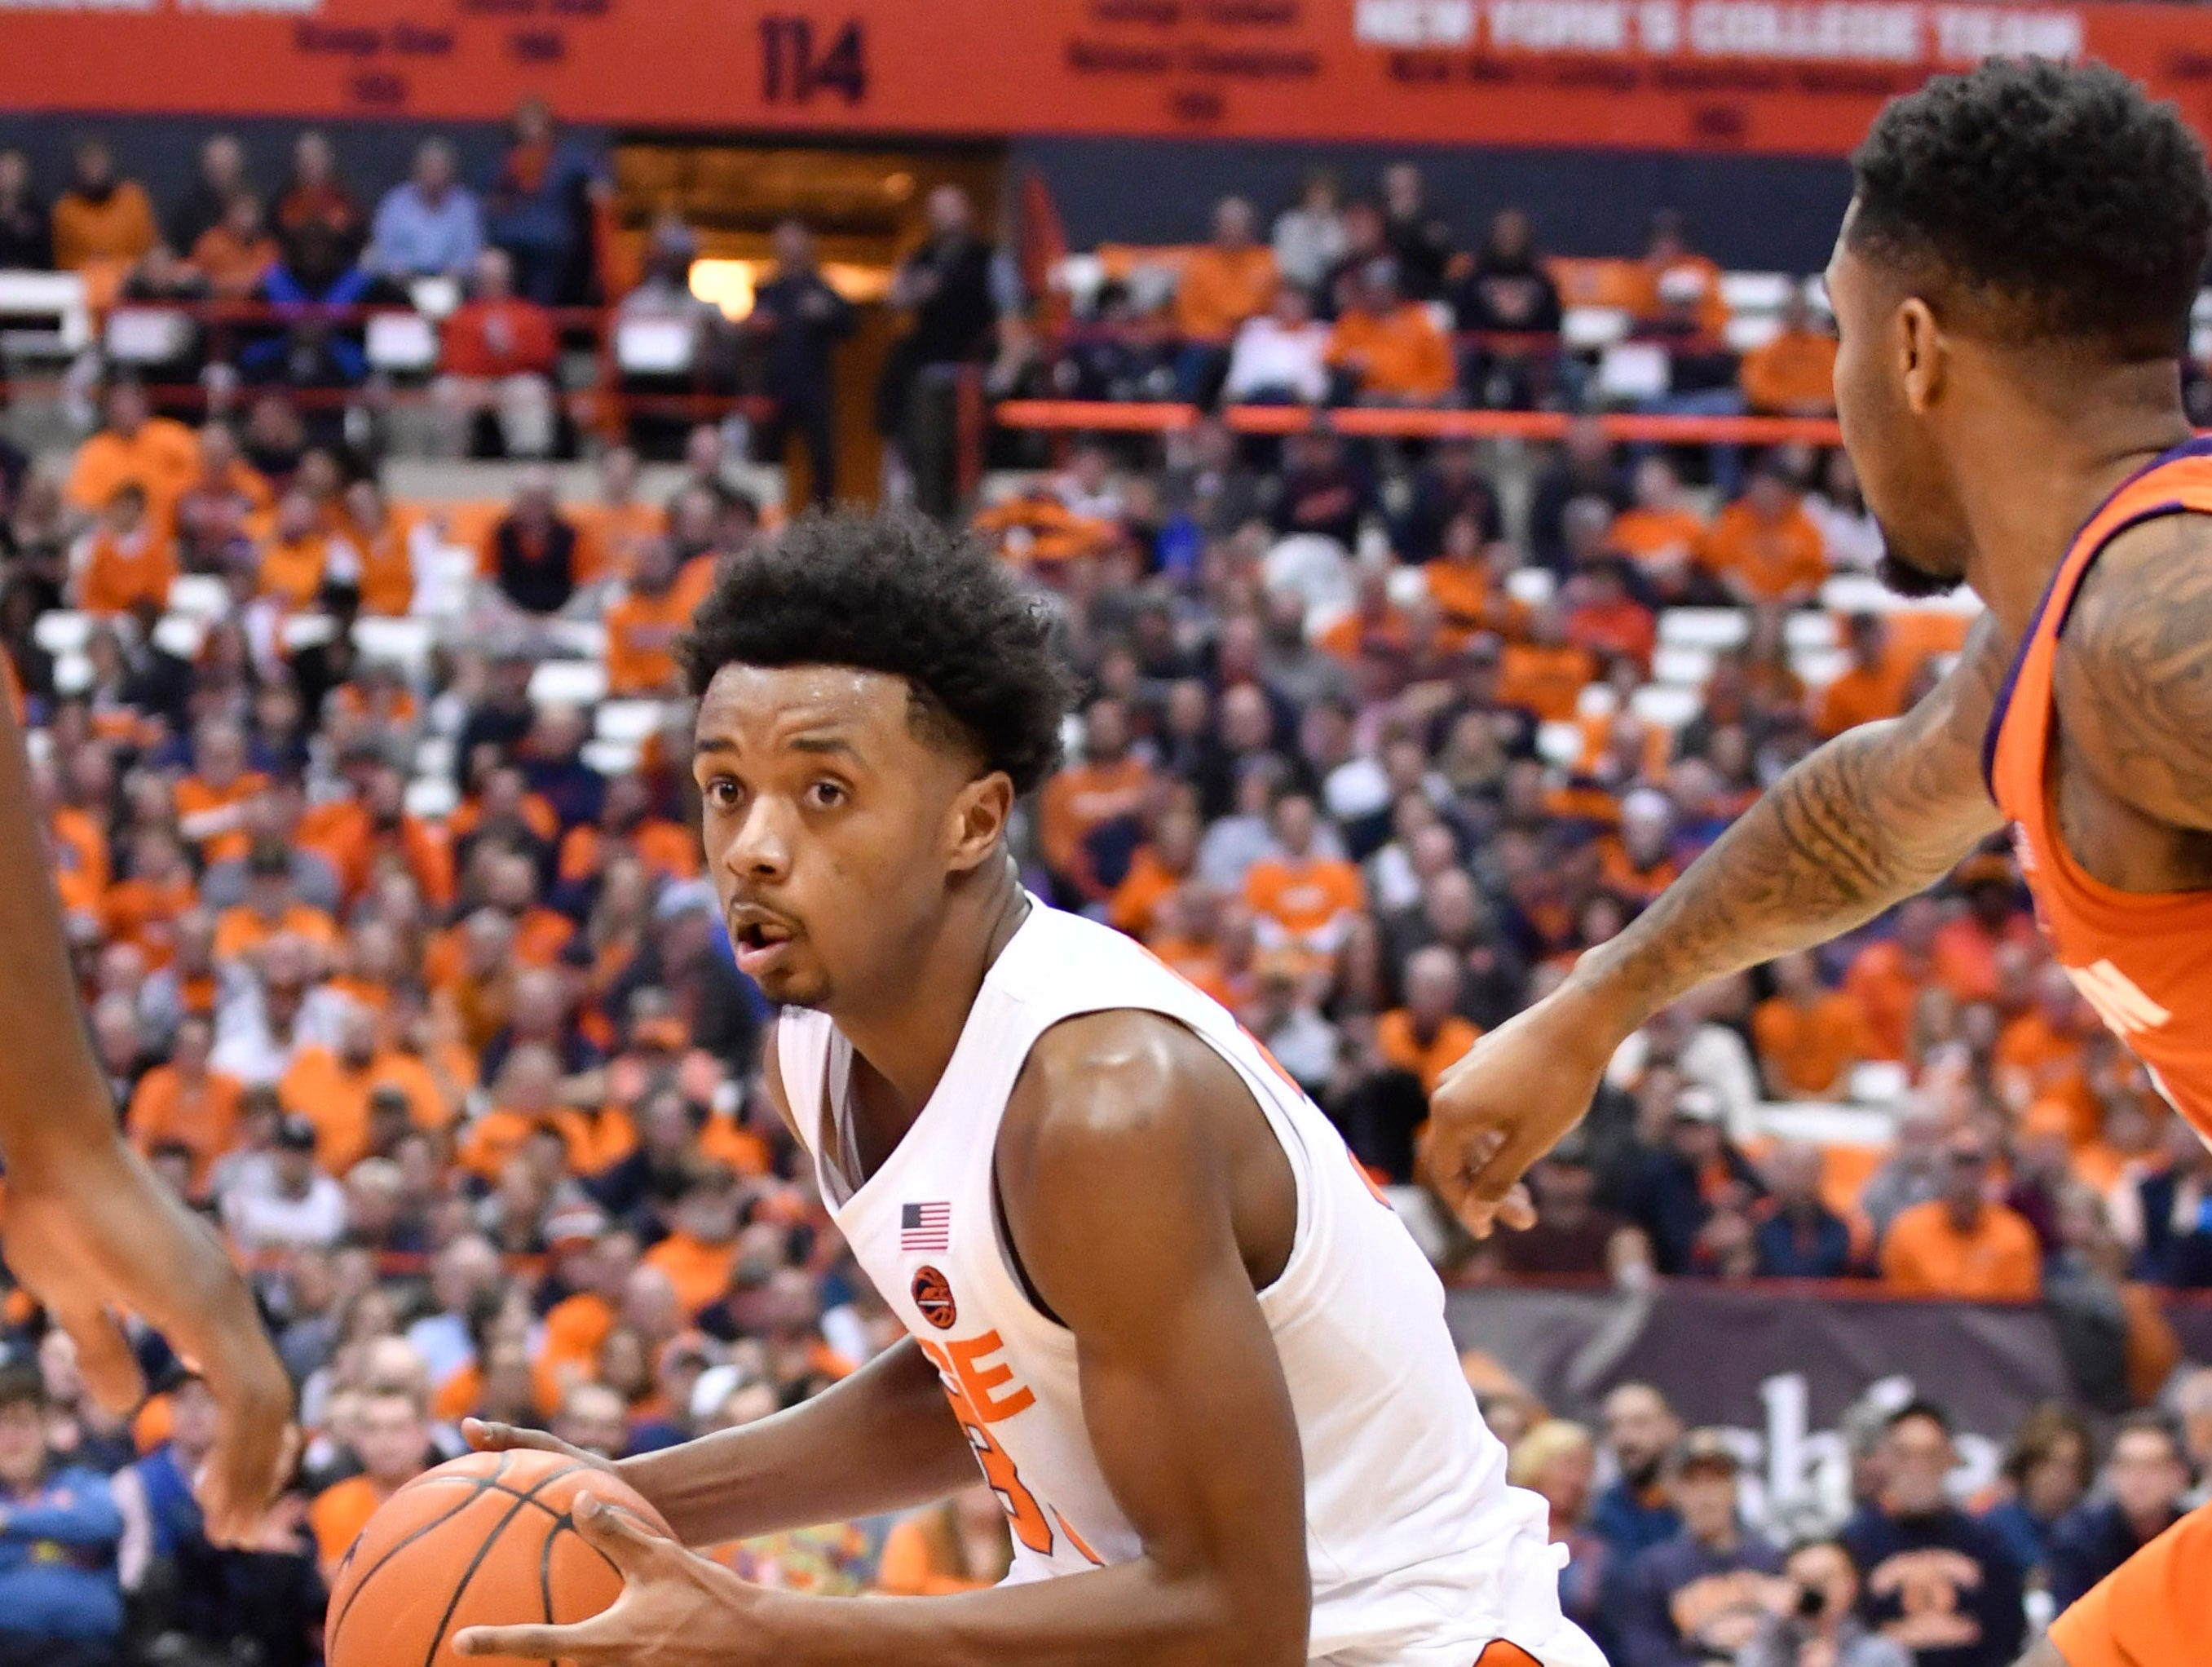 Jan 9, 2019; Syracuse, NY, USA; Syracuse Orange forward Elijah Hughes (33) changes direction on his dribble against the Clemson Tigers during the second half at the Carrier Dome.